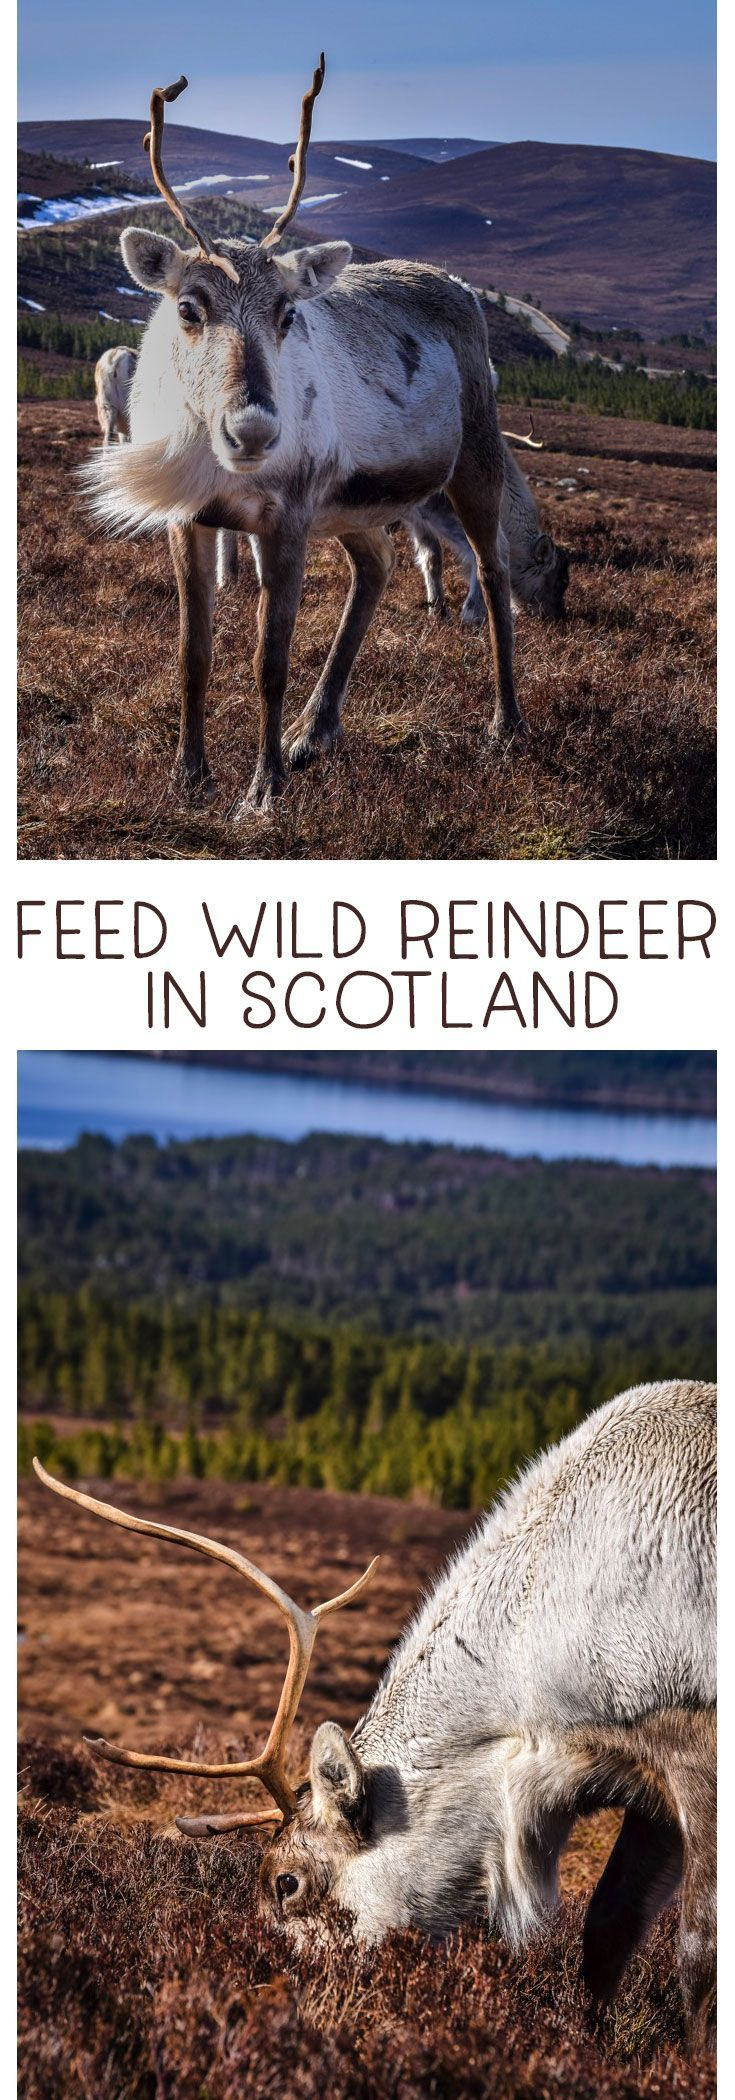 Feed reindeer in Scotland! Learn all about this amazing adventure at the Cairngorm Reindeer Centre in the Cairngorms National Park outside Aviemore. #Scotland #ThingstodoinScotland #Reindeer #WildEncounters #Cairngorms  via @MrsMajorHoff